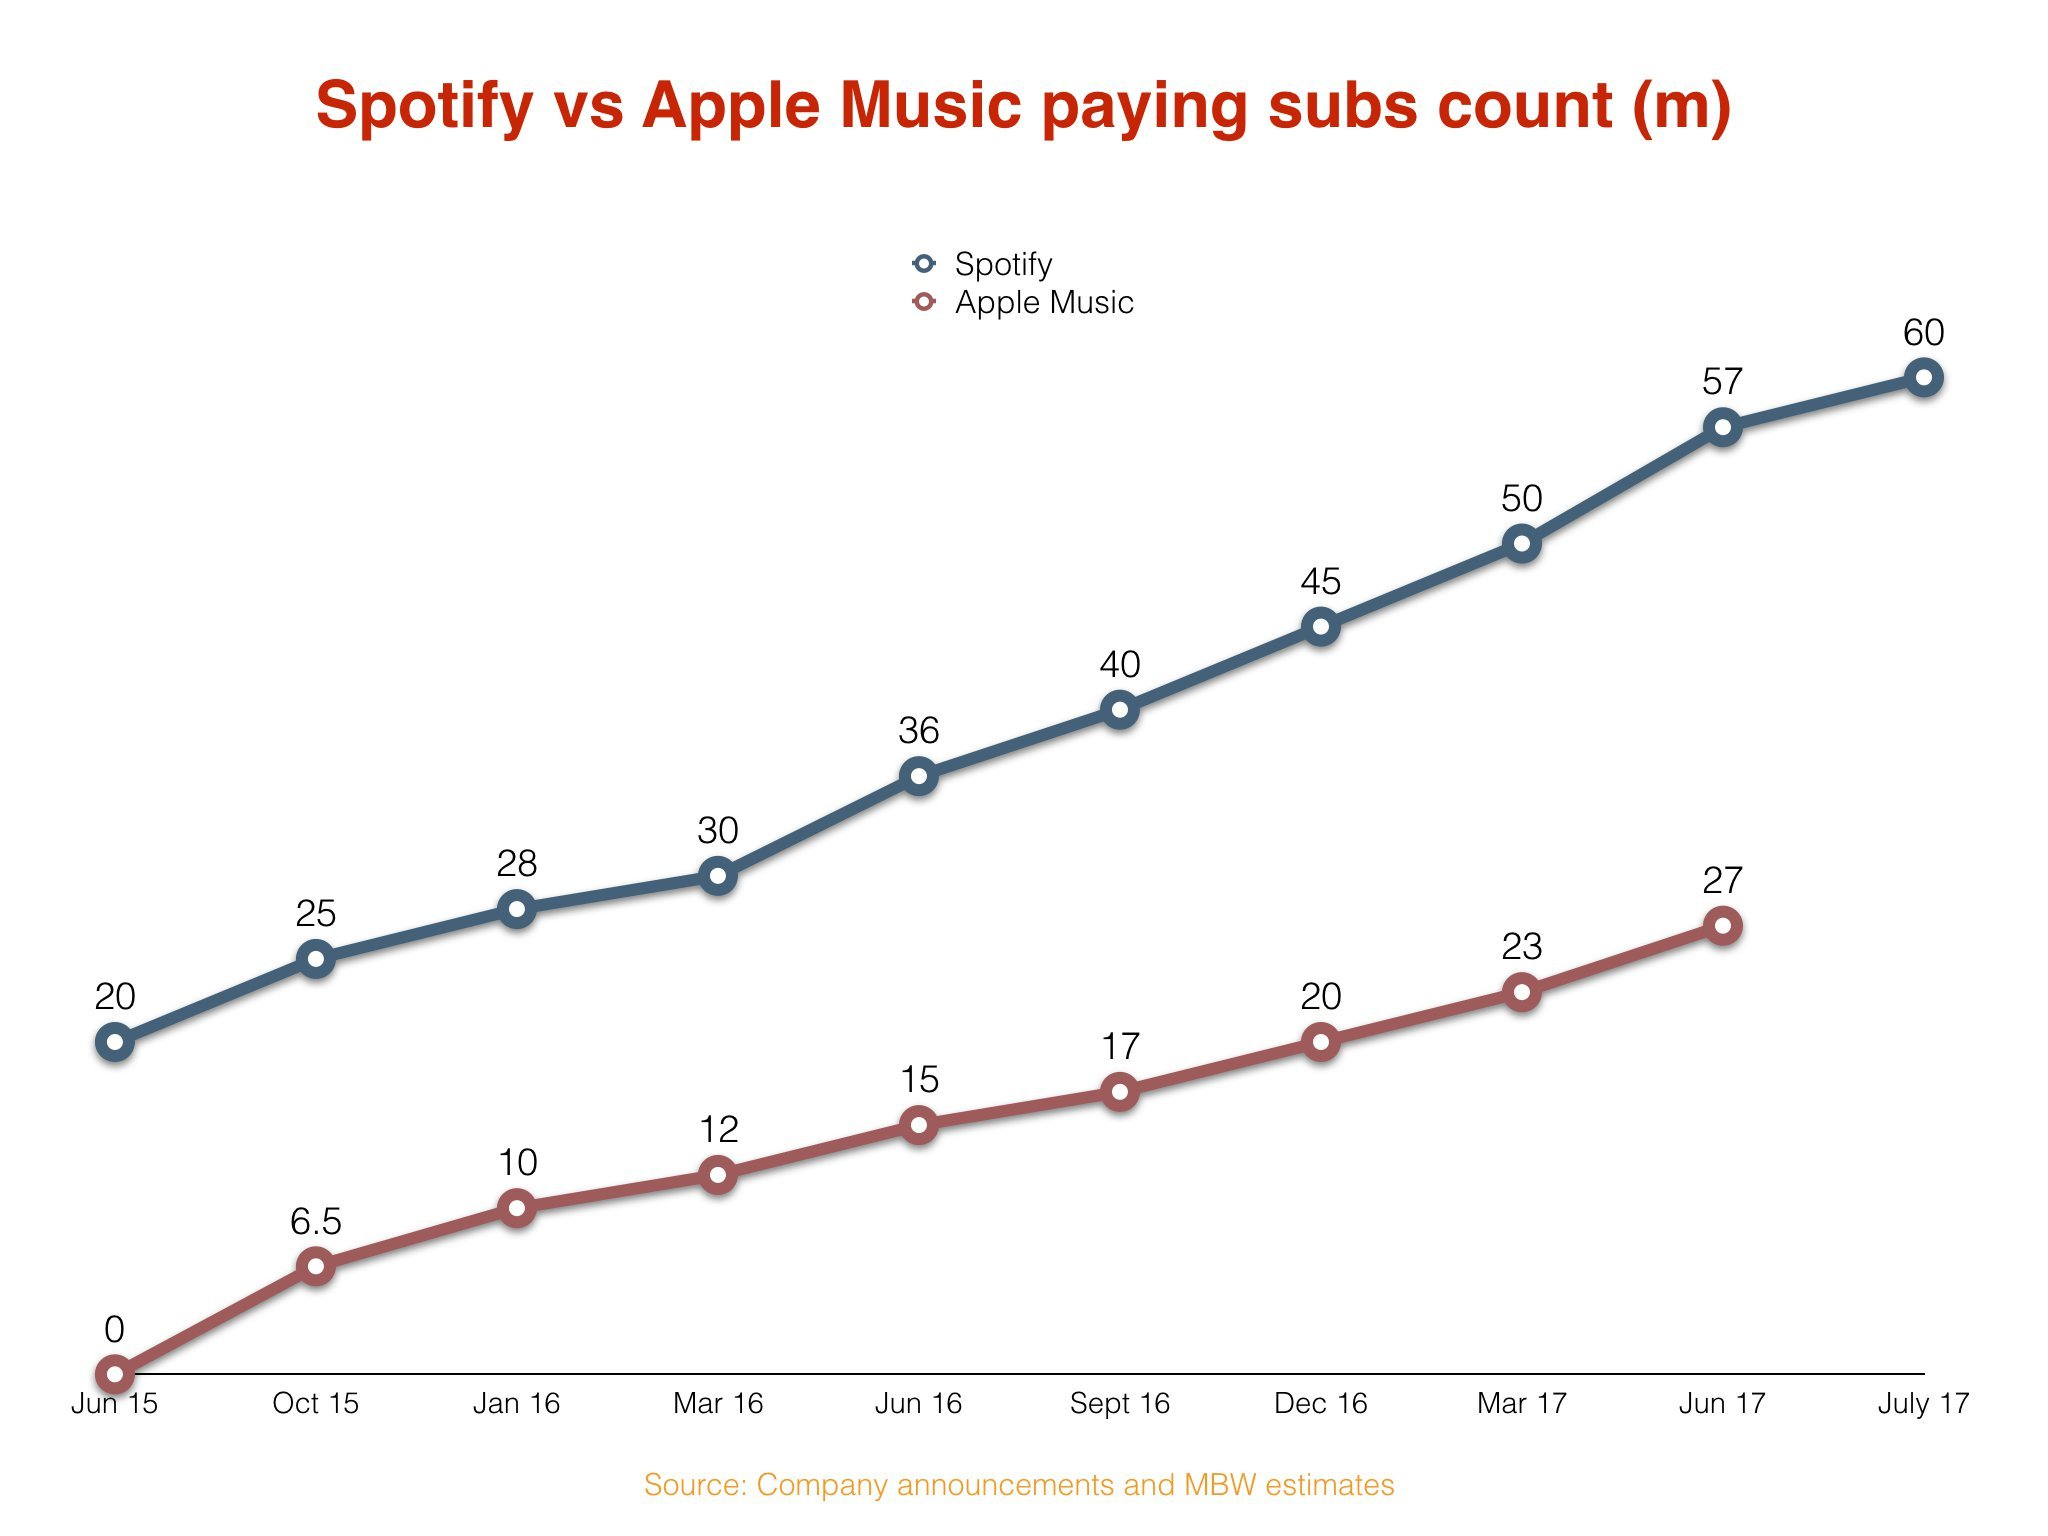 Spotify reaches 60 mln paid subscribers